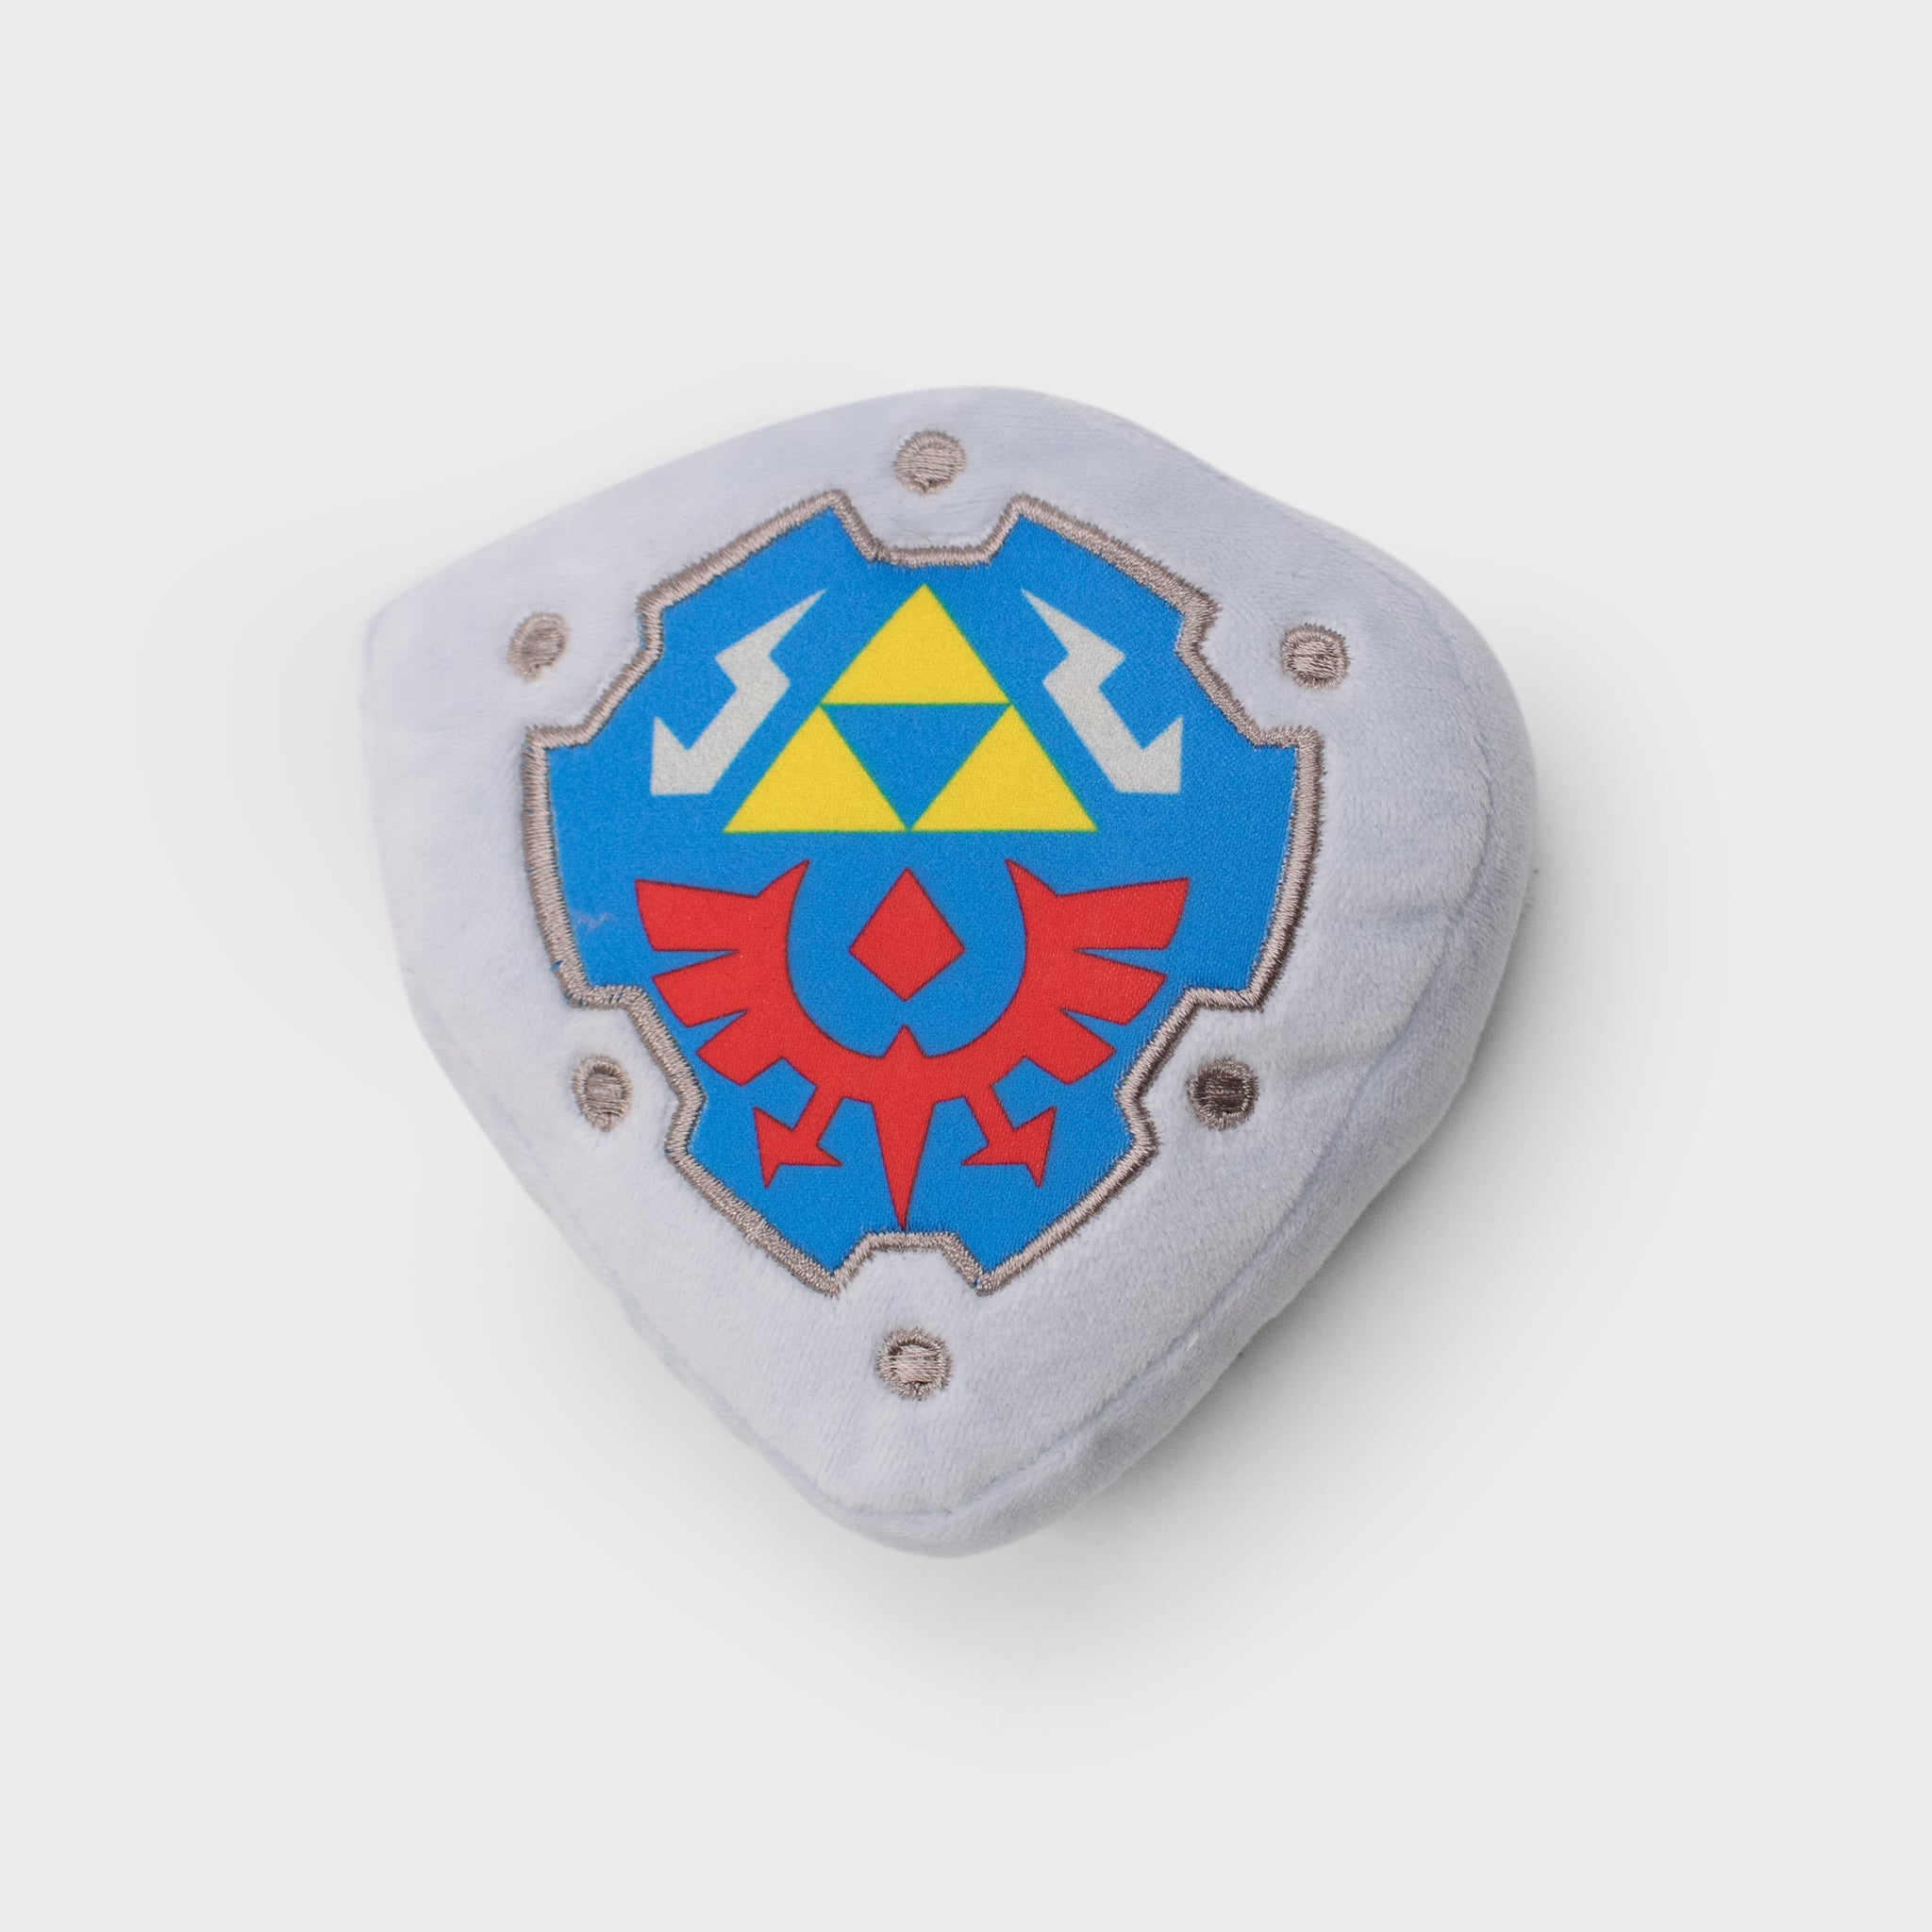 the legend of zelda link's awakening 2019 nintendo loz collector's box exclusive collectible hyrule hylian shield plush culturefly